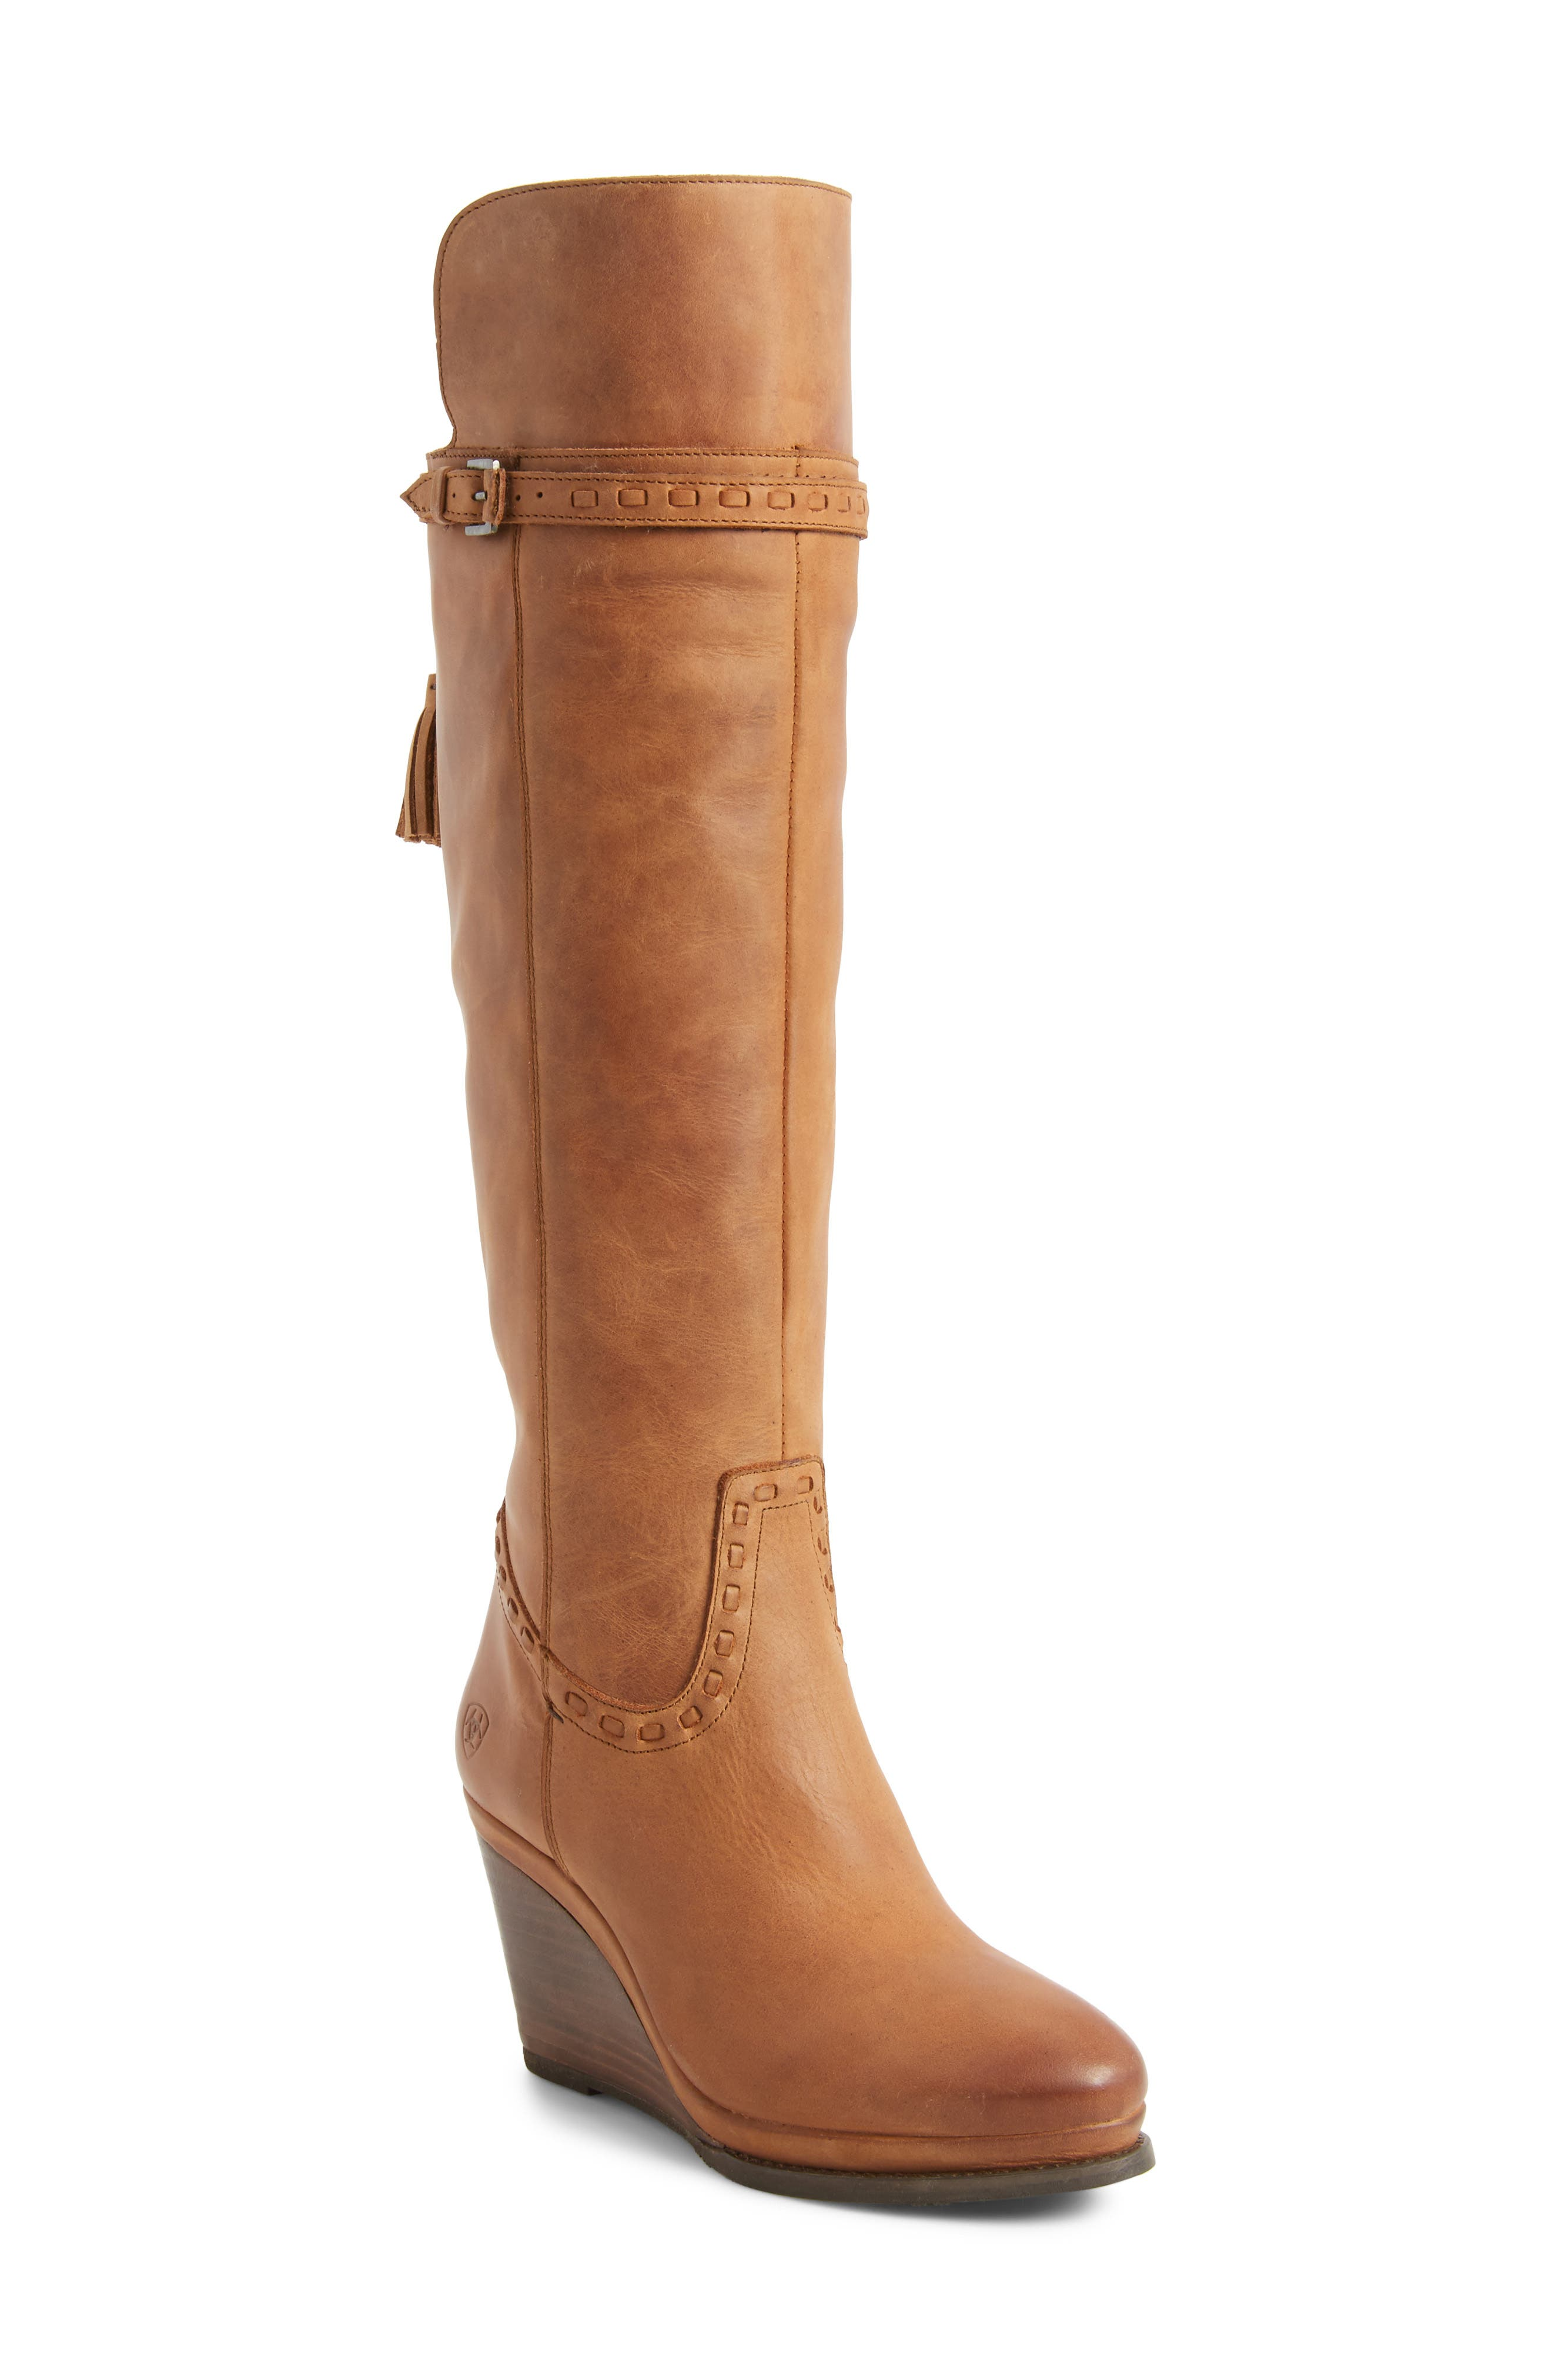 Knoxville Boot,                         Main,                         color, Trendy Tawny Leather